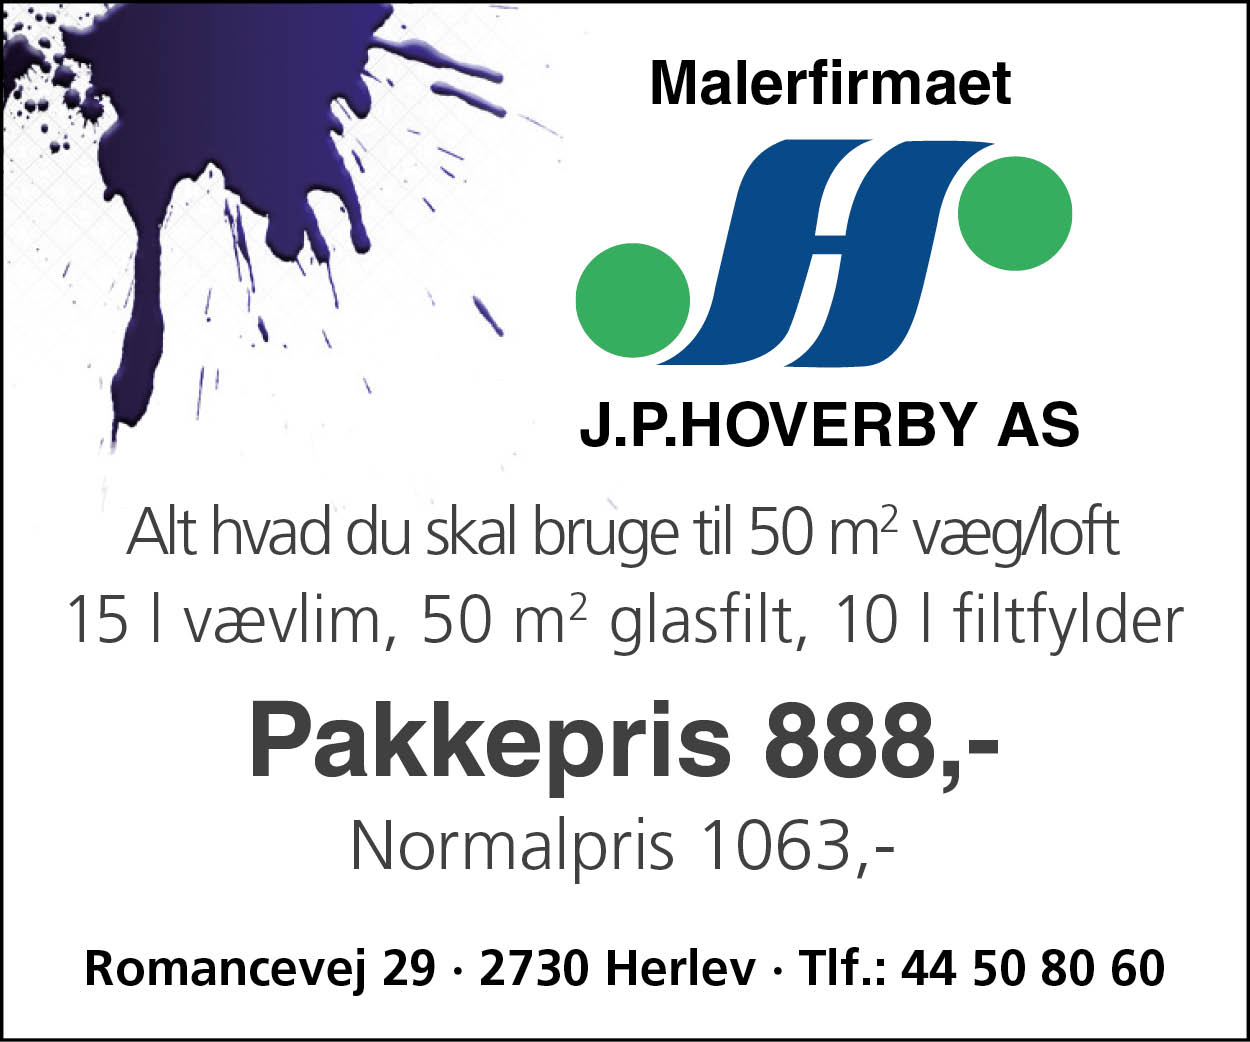 300 x 250 Hoverby mobilbanner